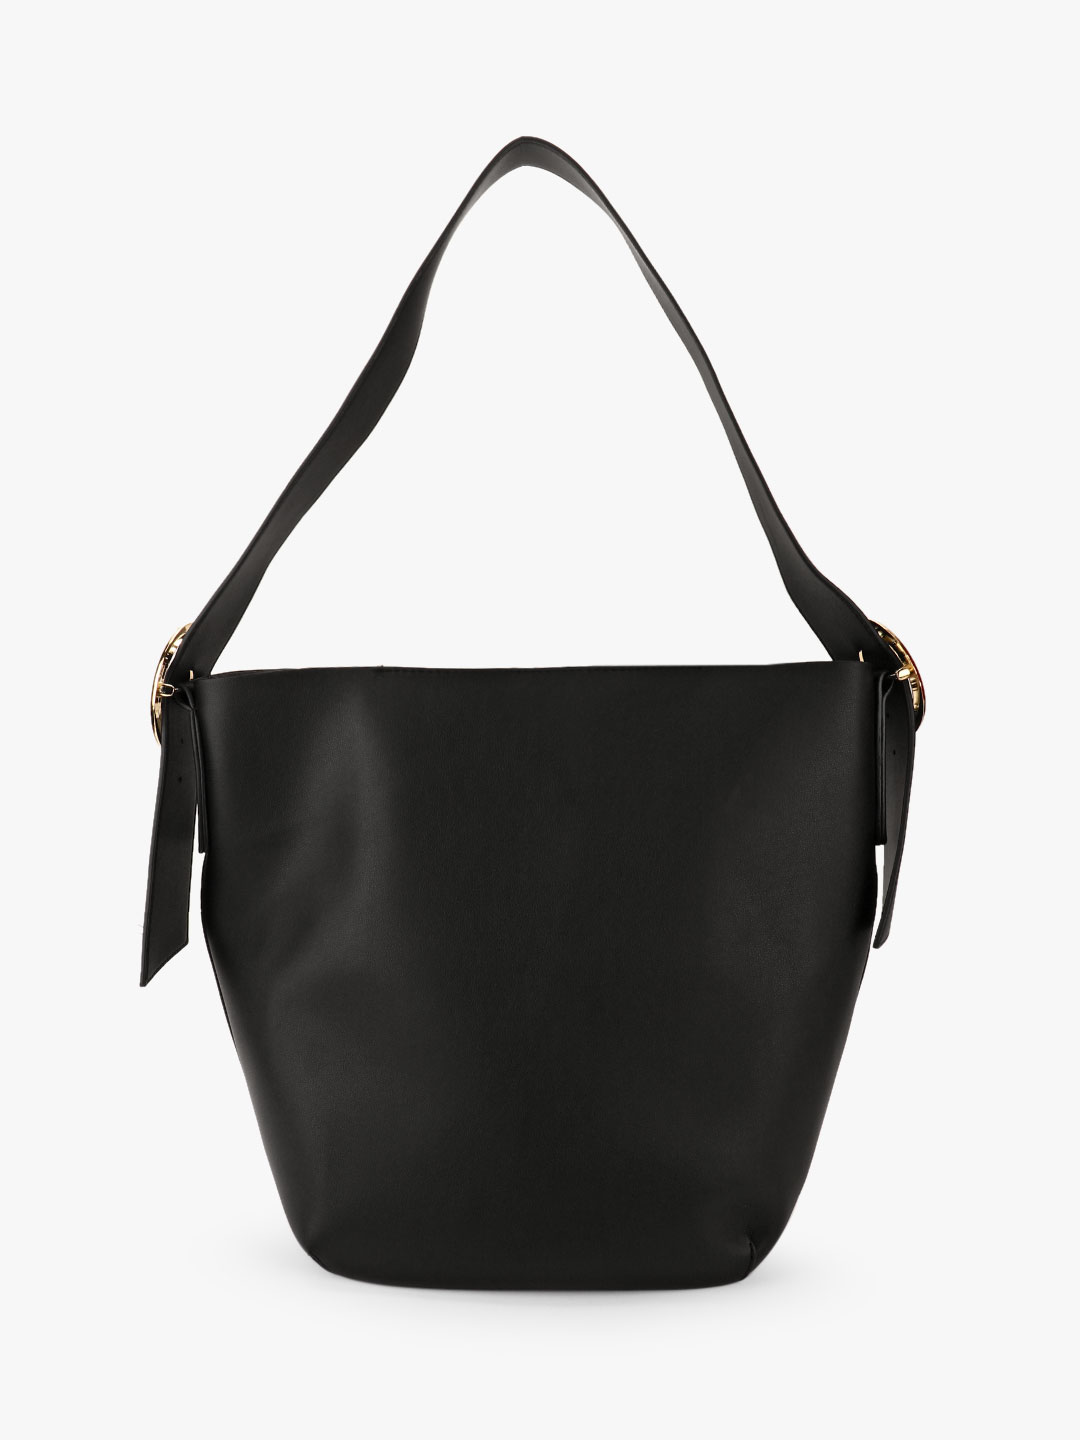 New Look Black Buckle Detail Hobo Tote Bag 1